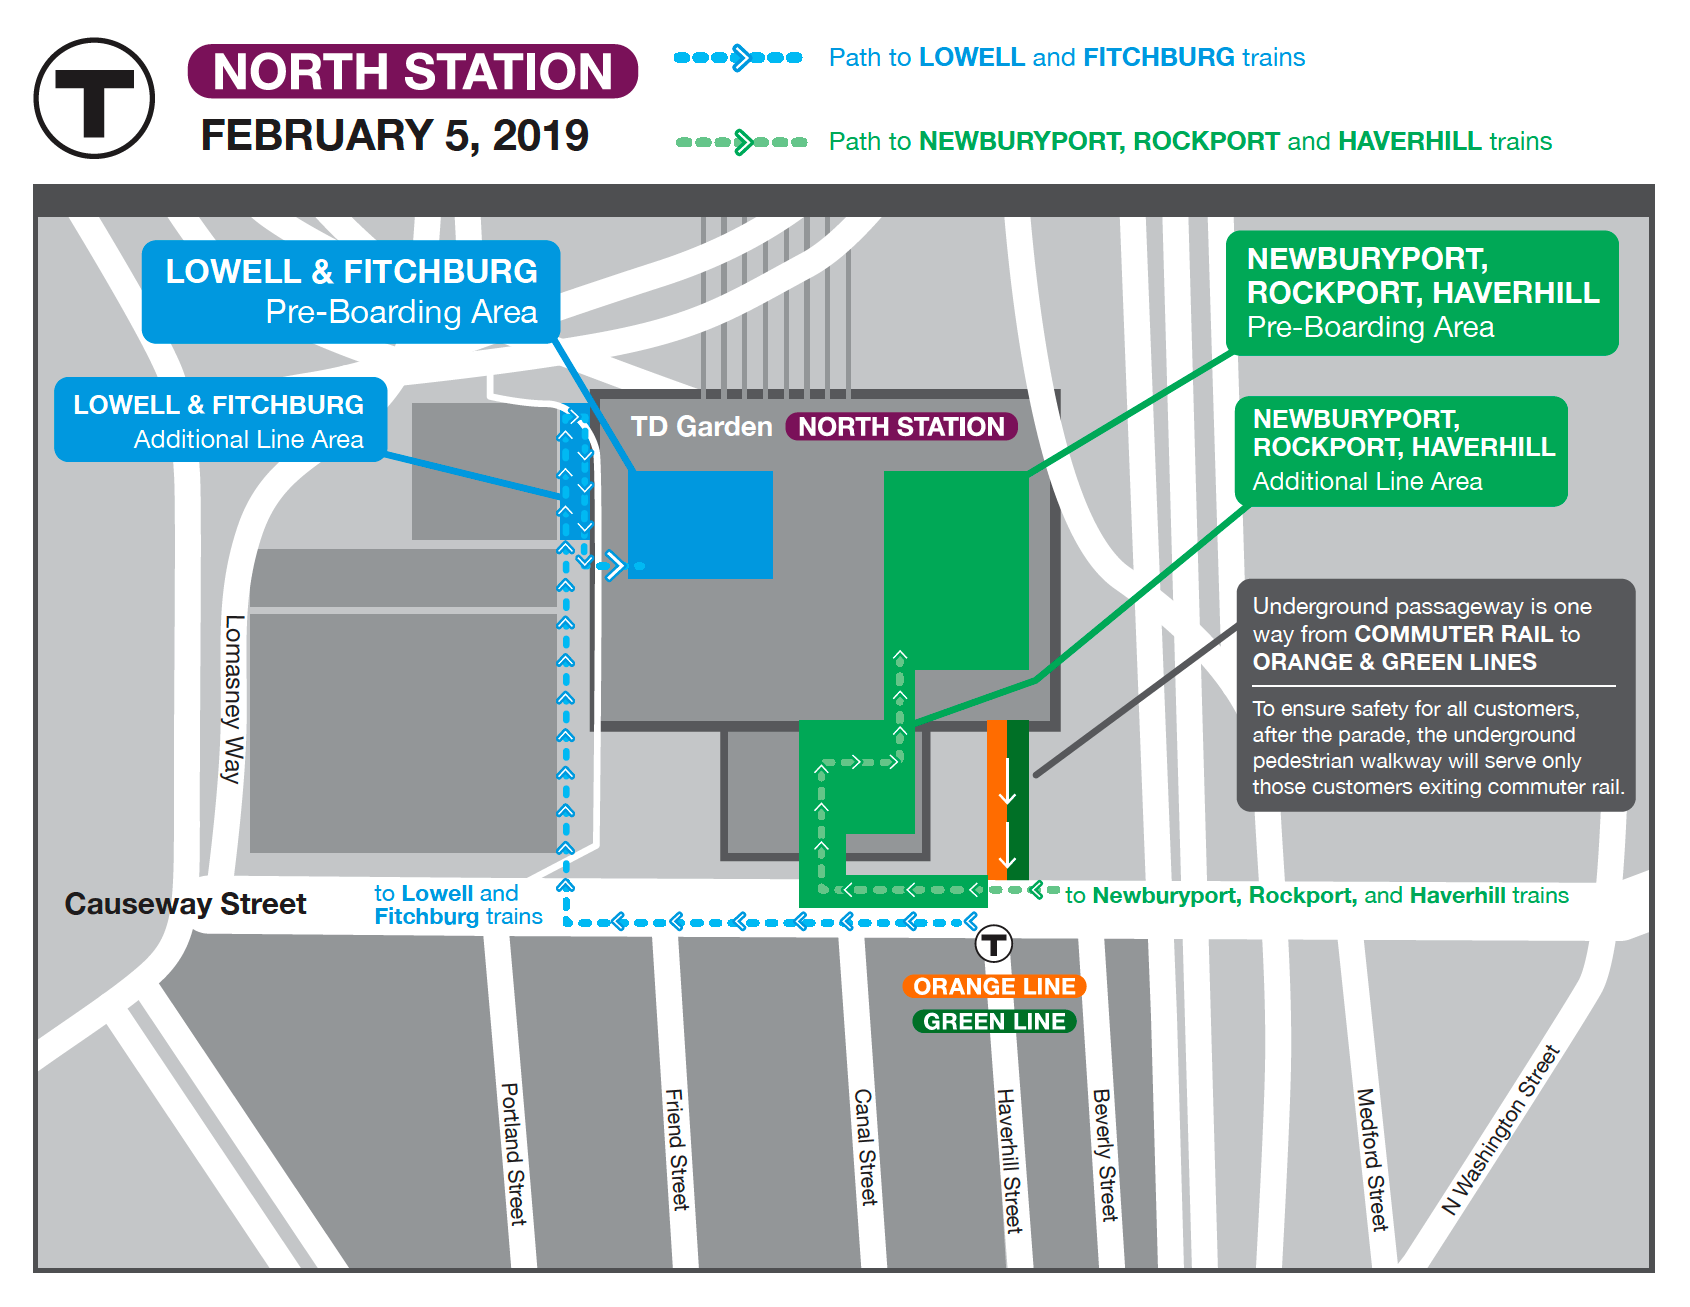 Boarding locations at North Station. Lowell and Fitchburg lines board in the upper left corner, near TD Garden. Newburyport, Rockport, Haverhill lines board from Causeway Street.